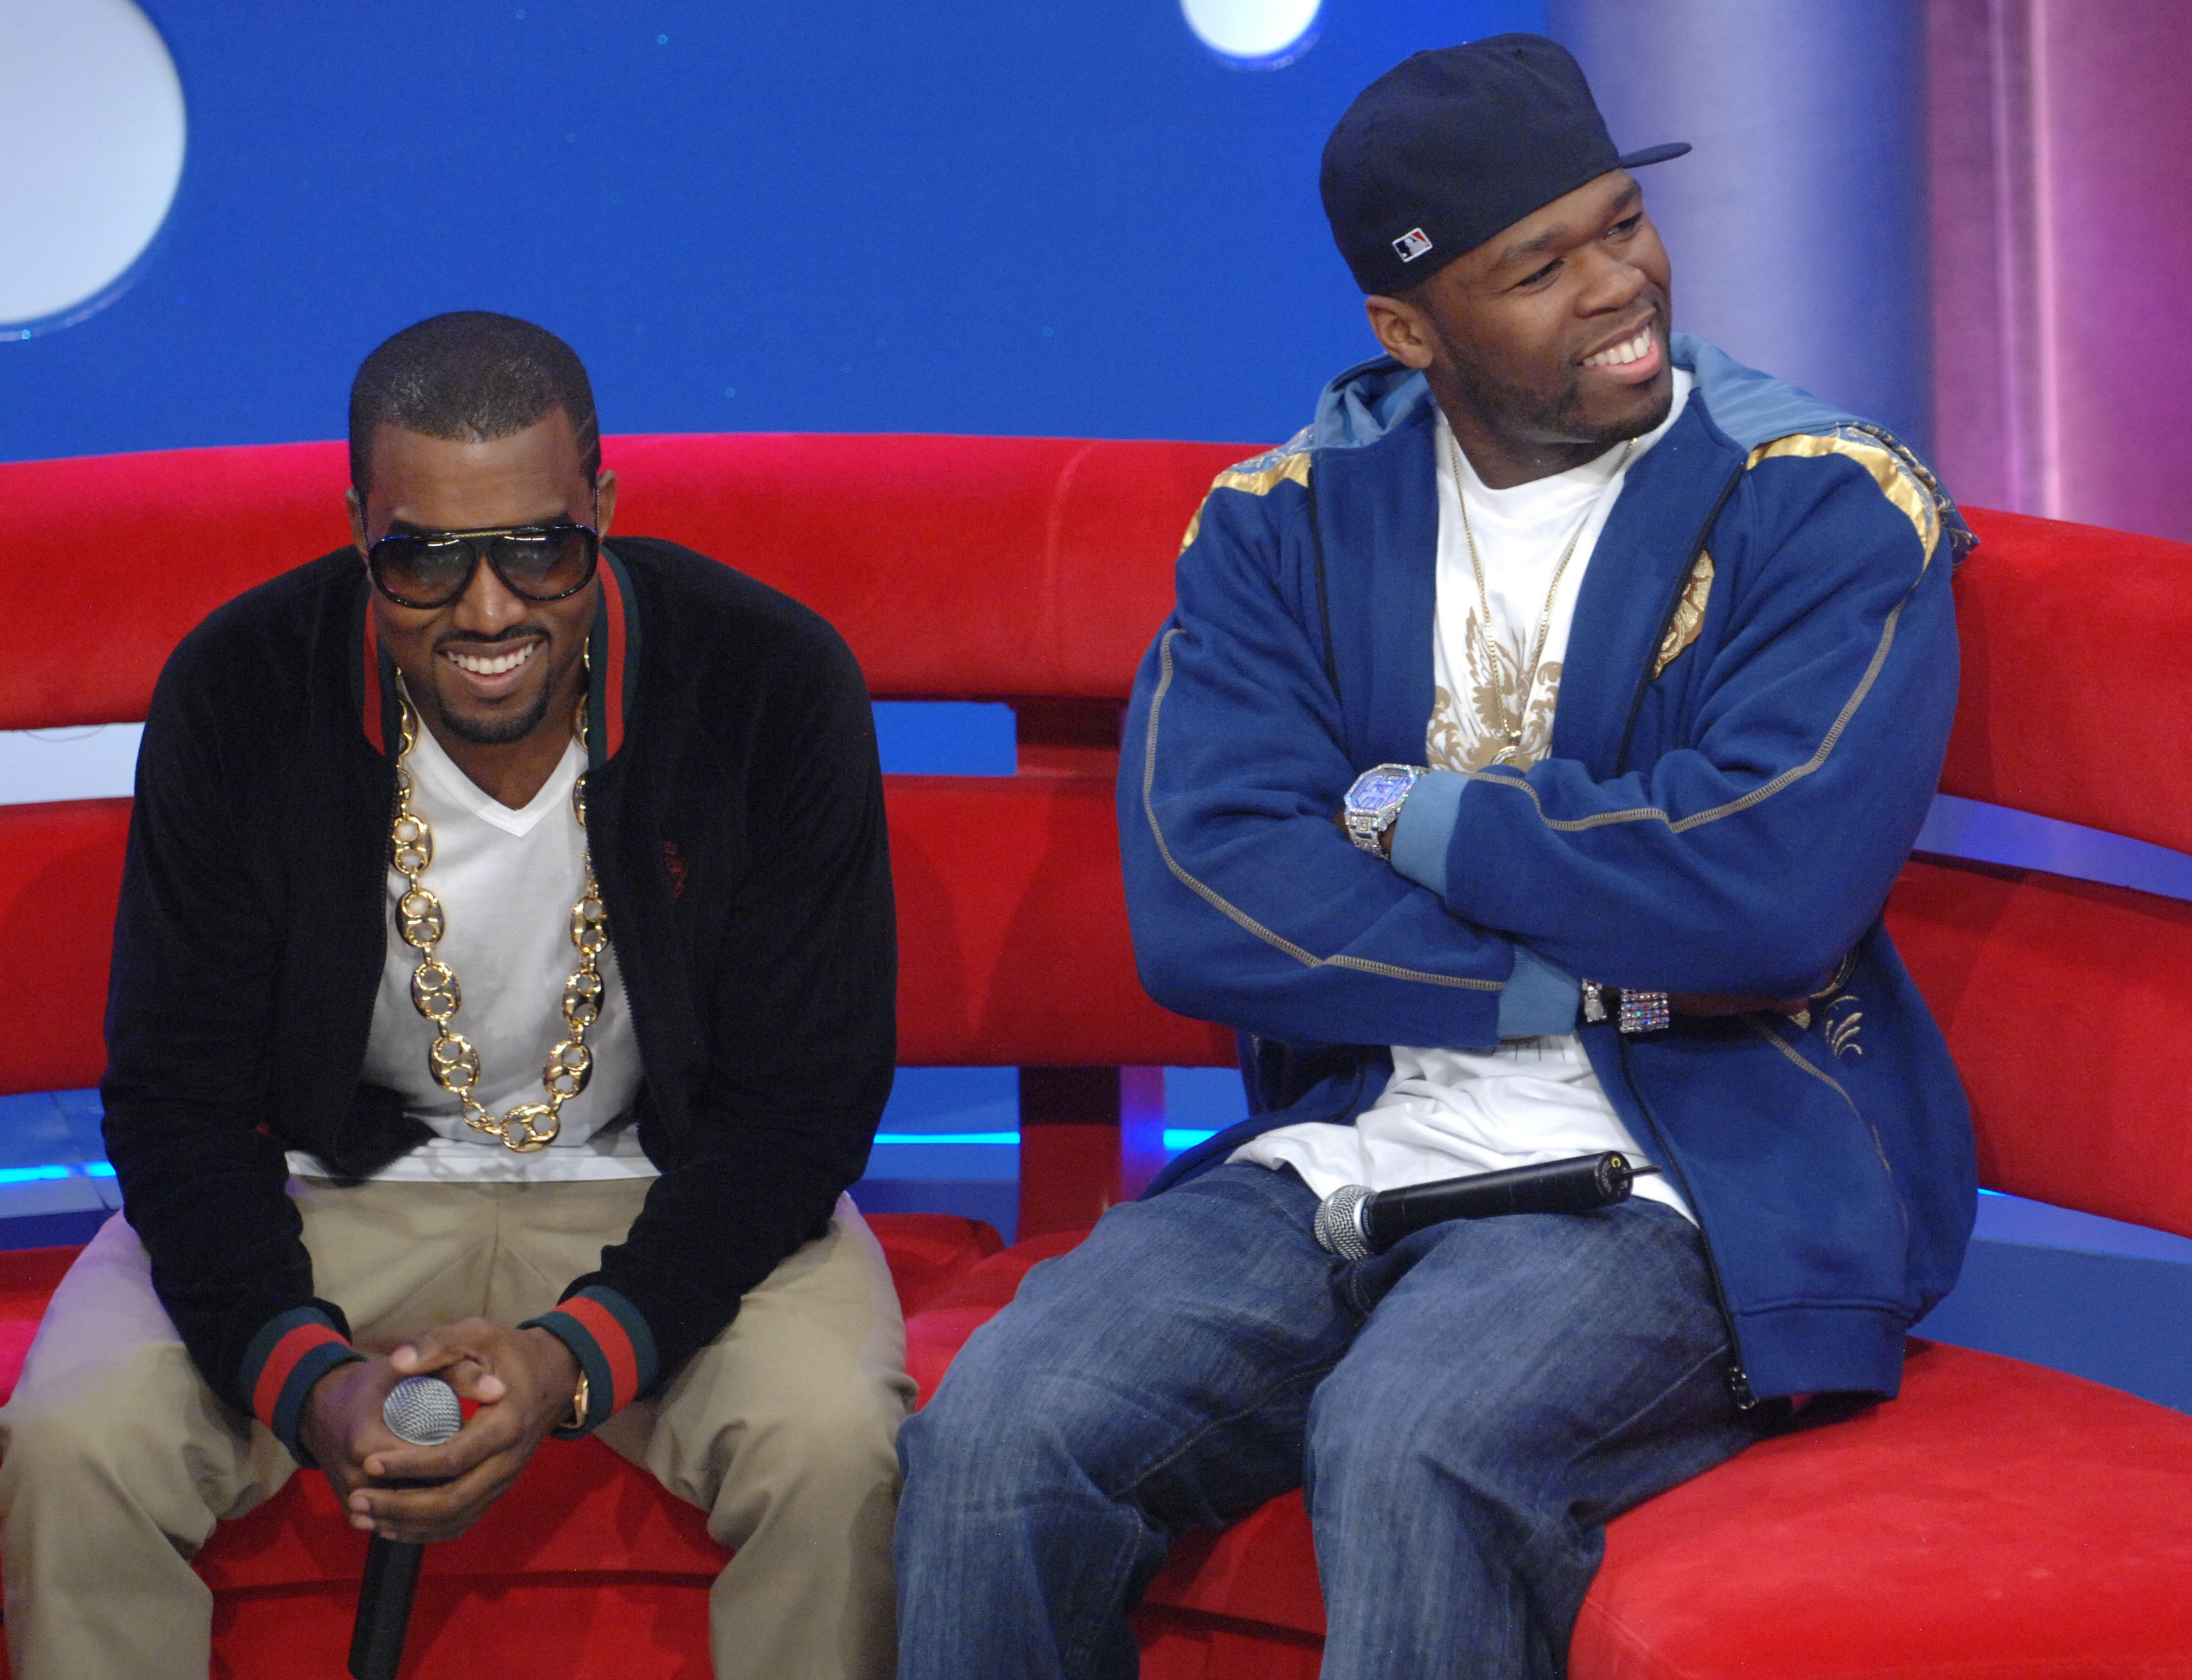 Celebrity feuds that were completely made up